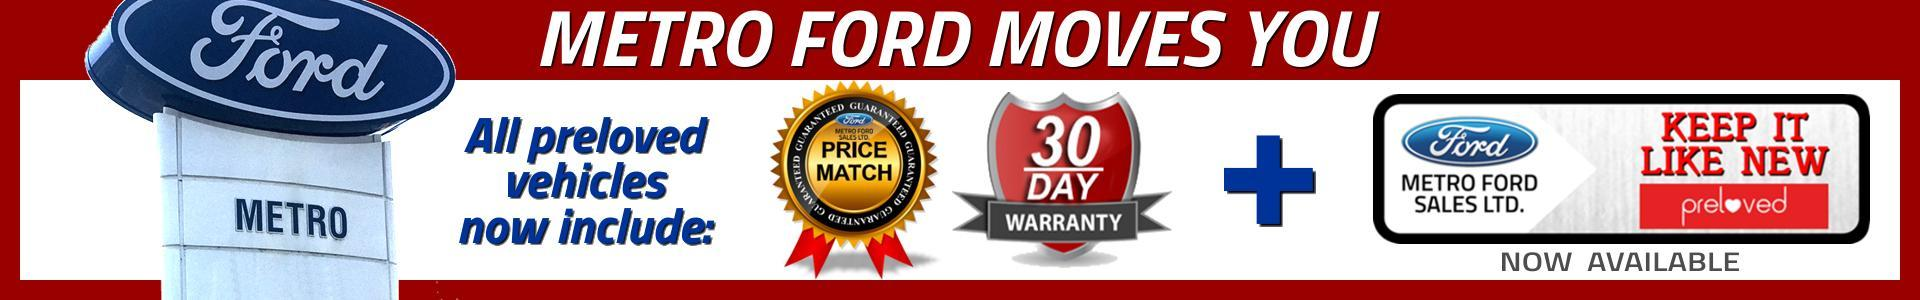 Used and preloved Vehicles at Metro Ford Calgary